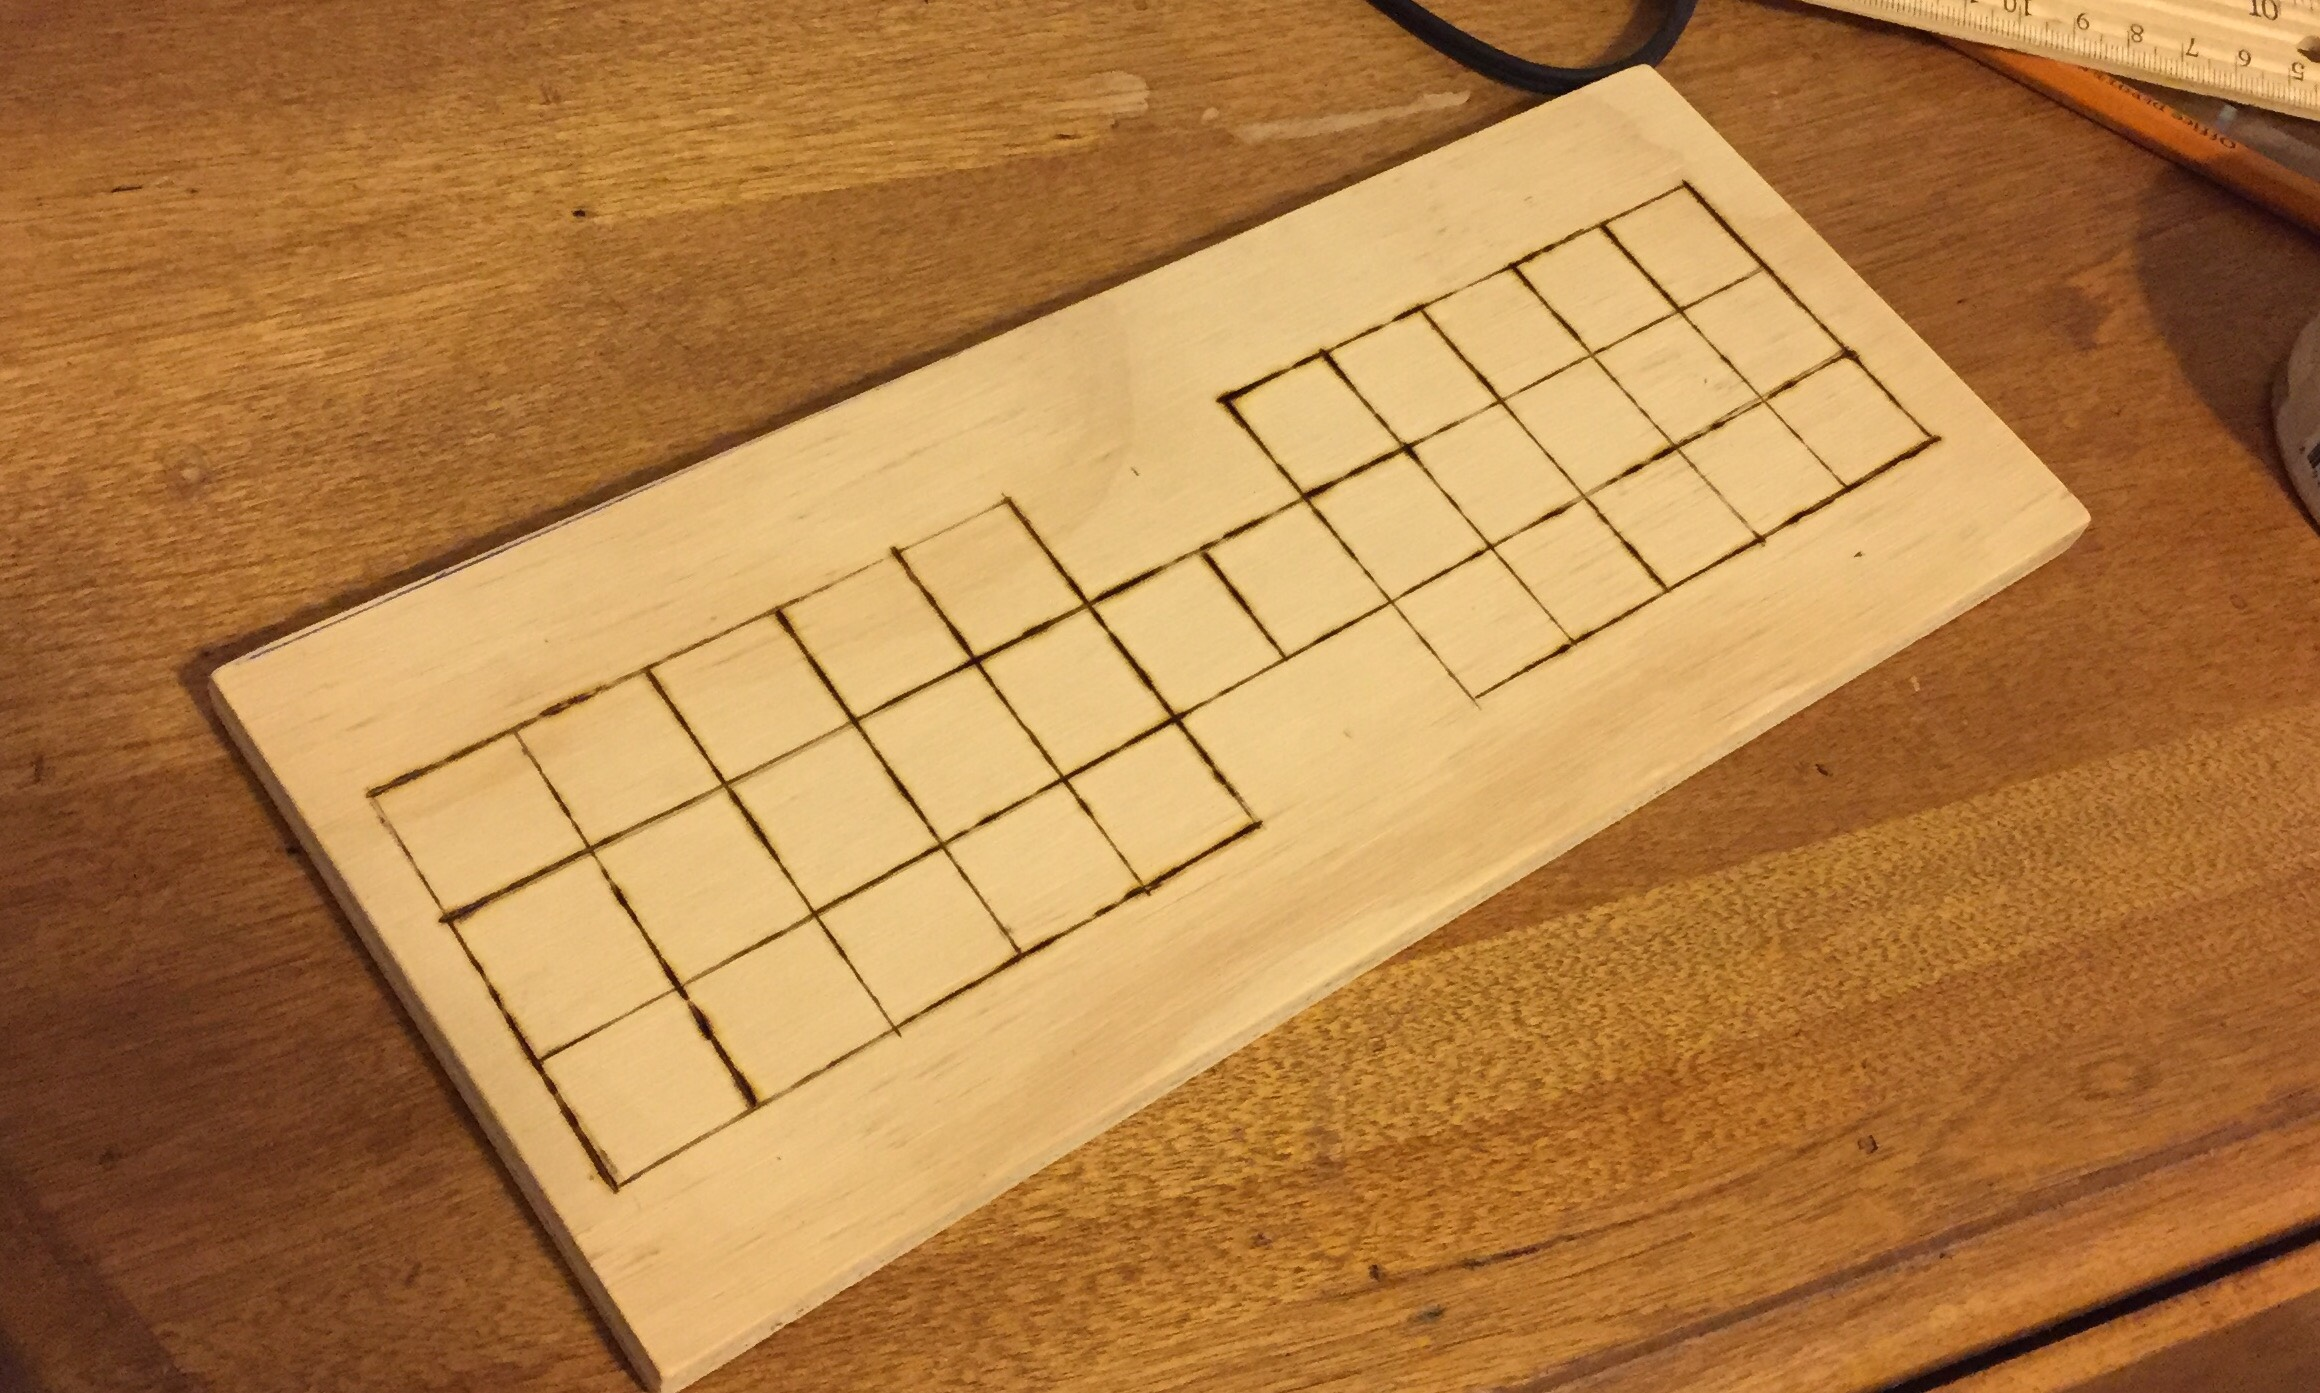 Making a Senet-Ur Board 1